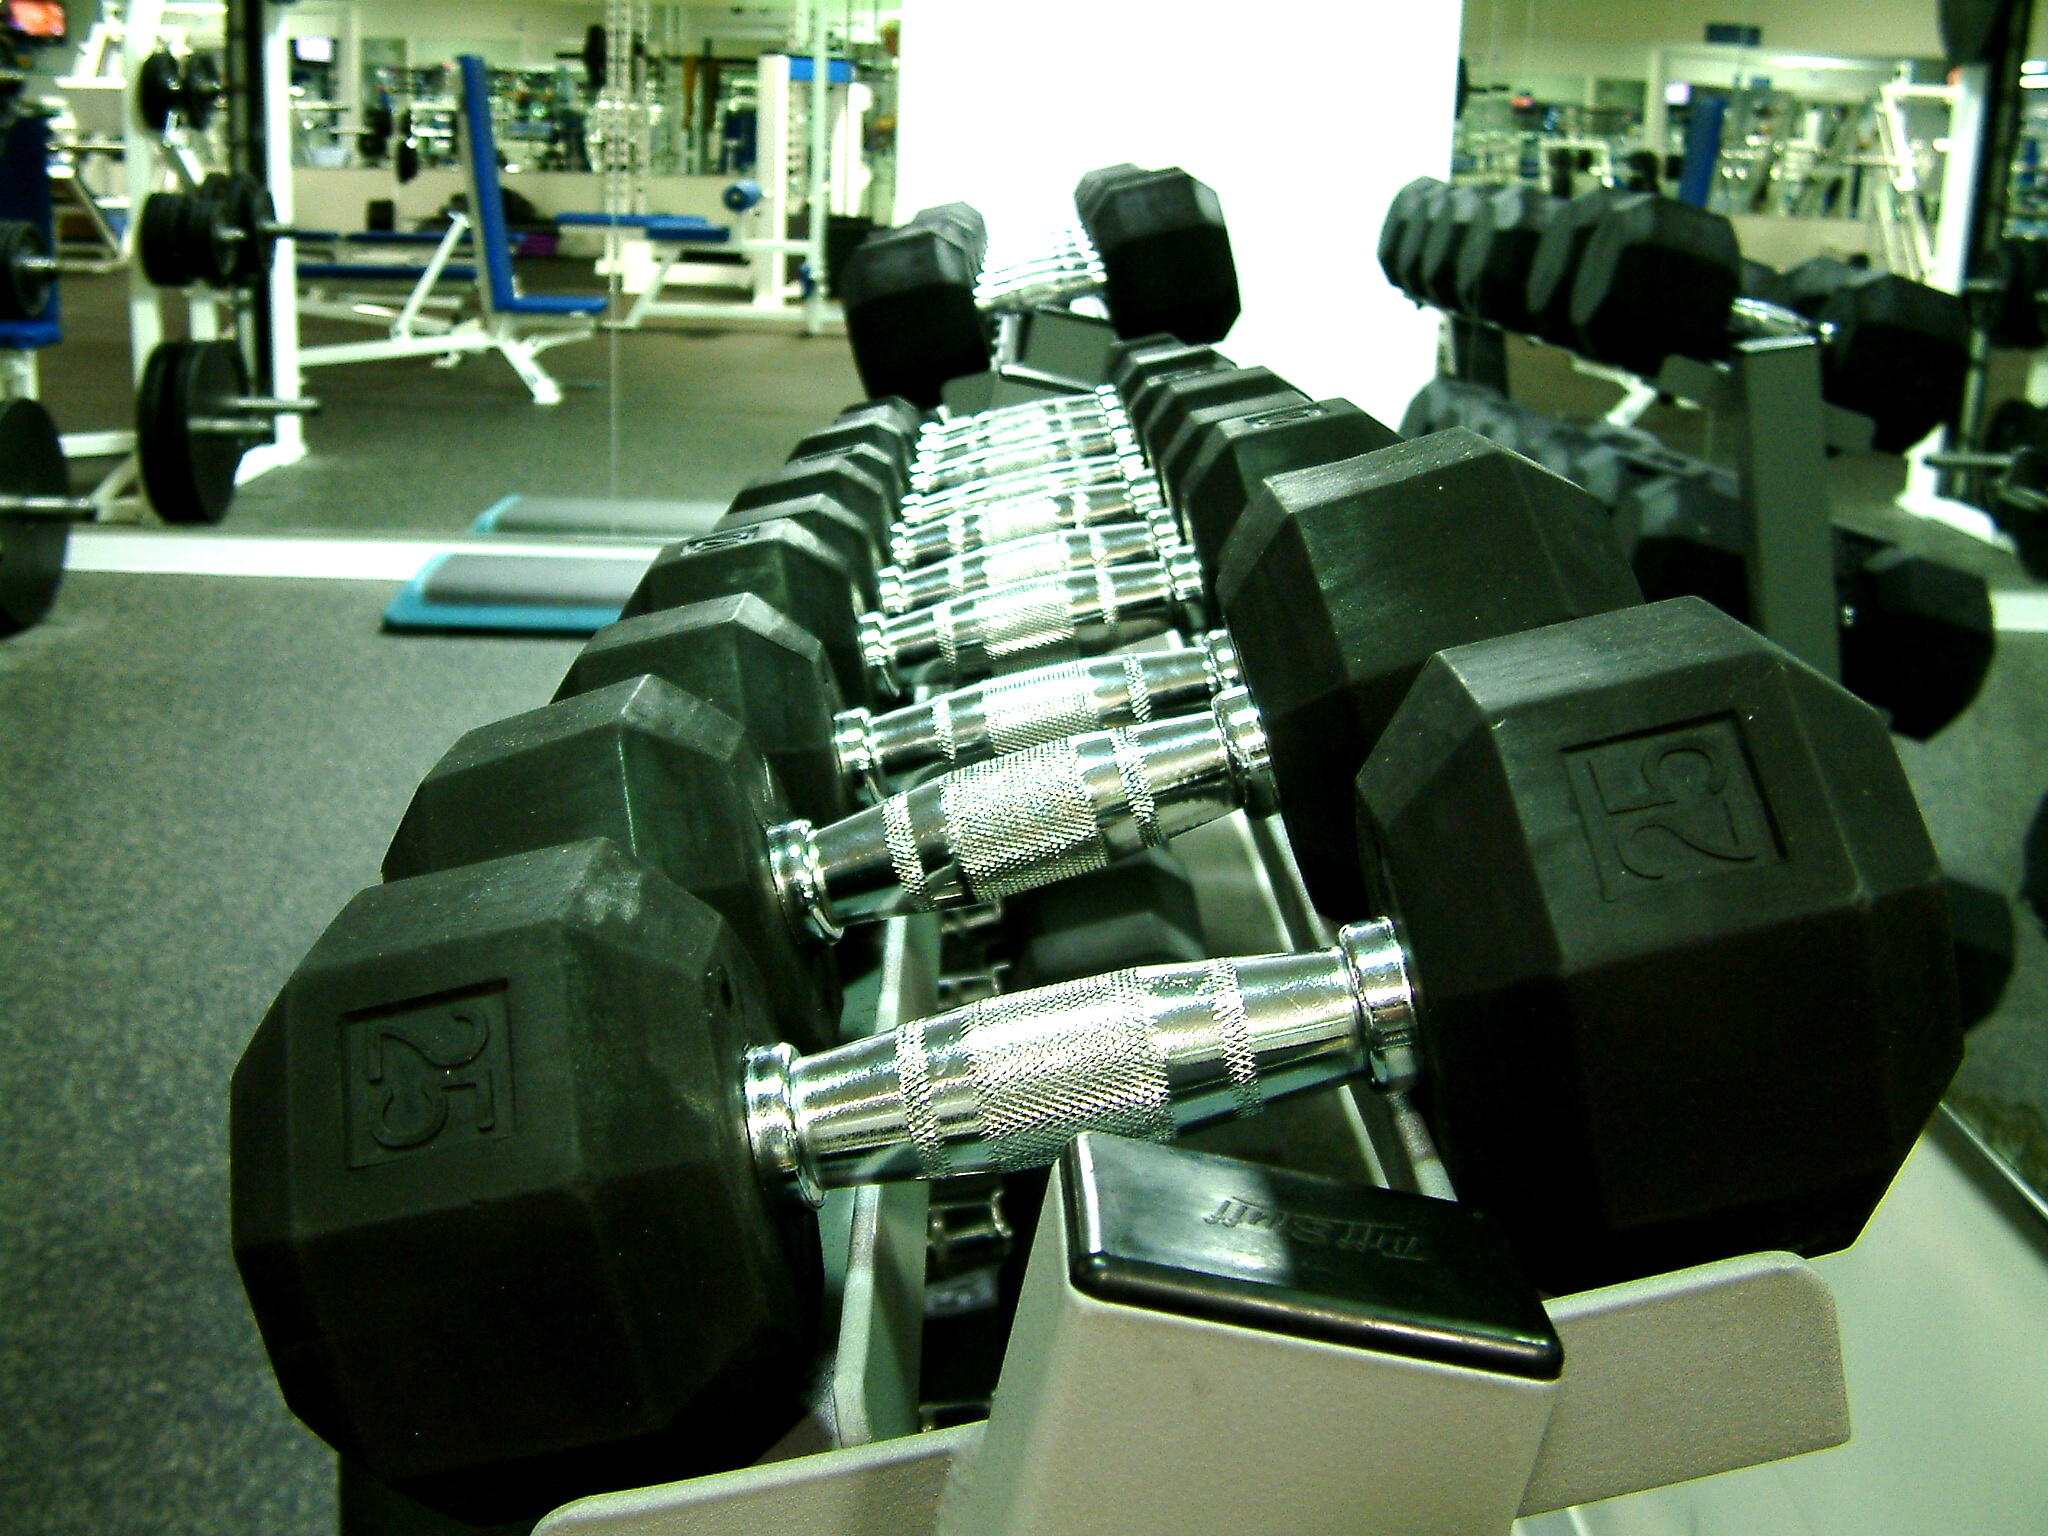 a rack of free weights